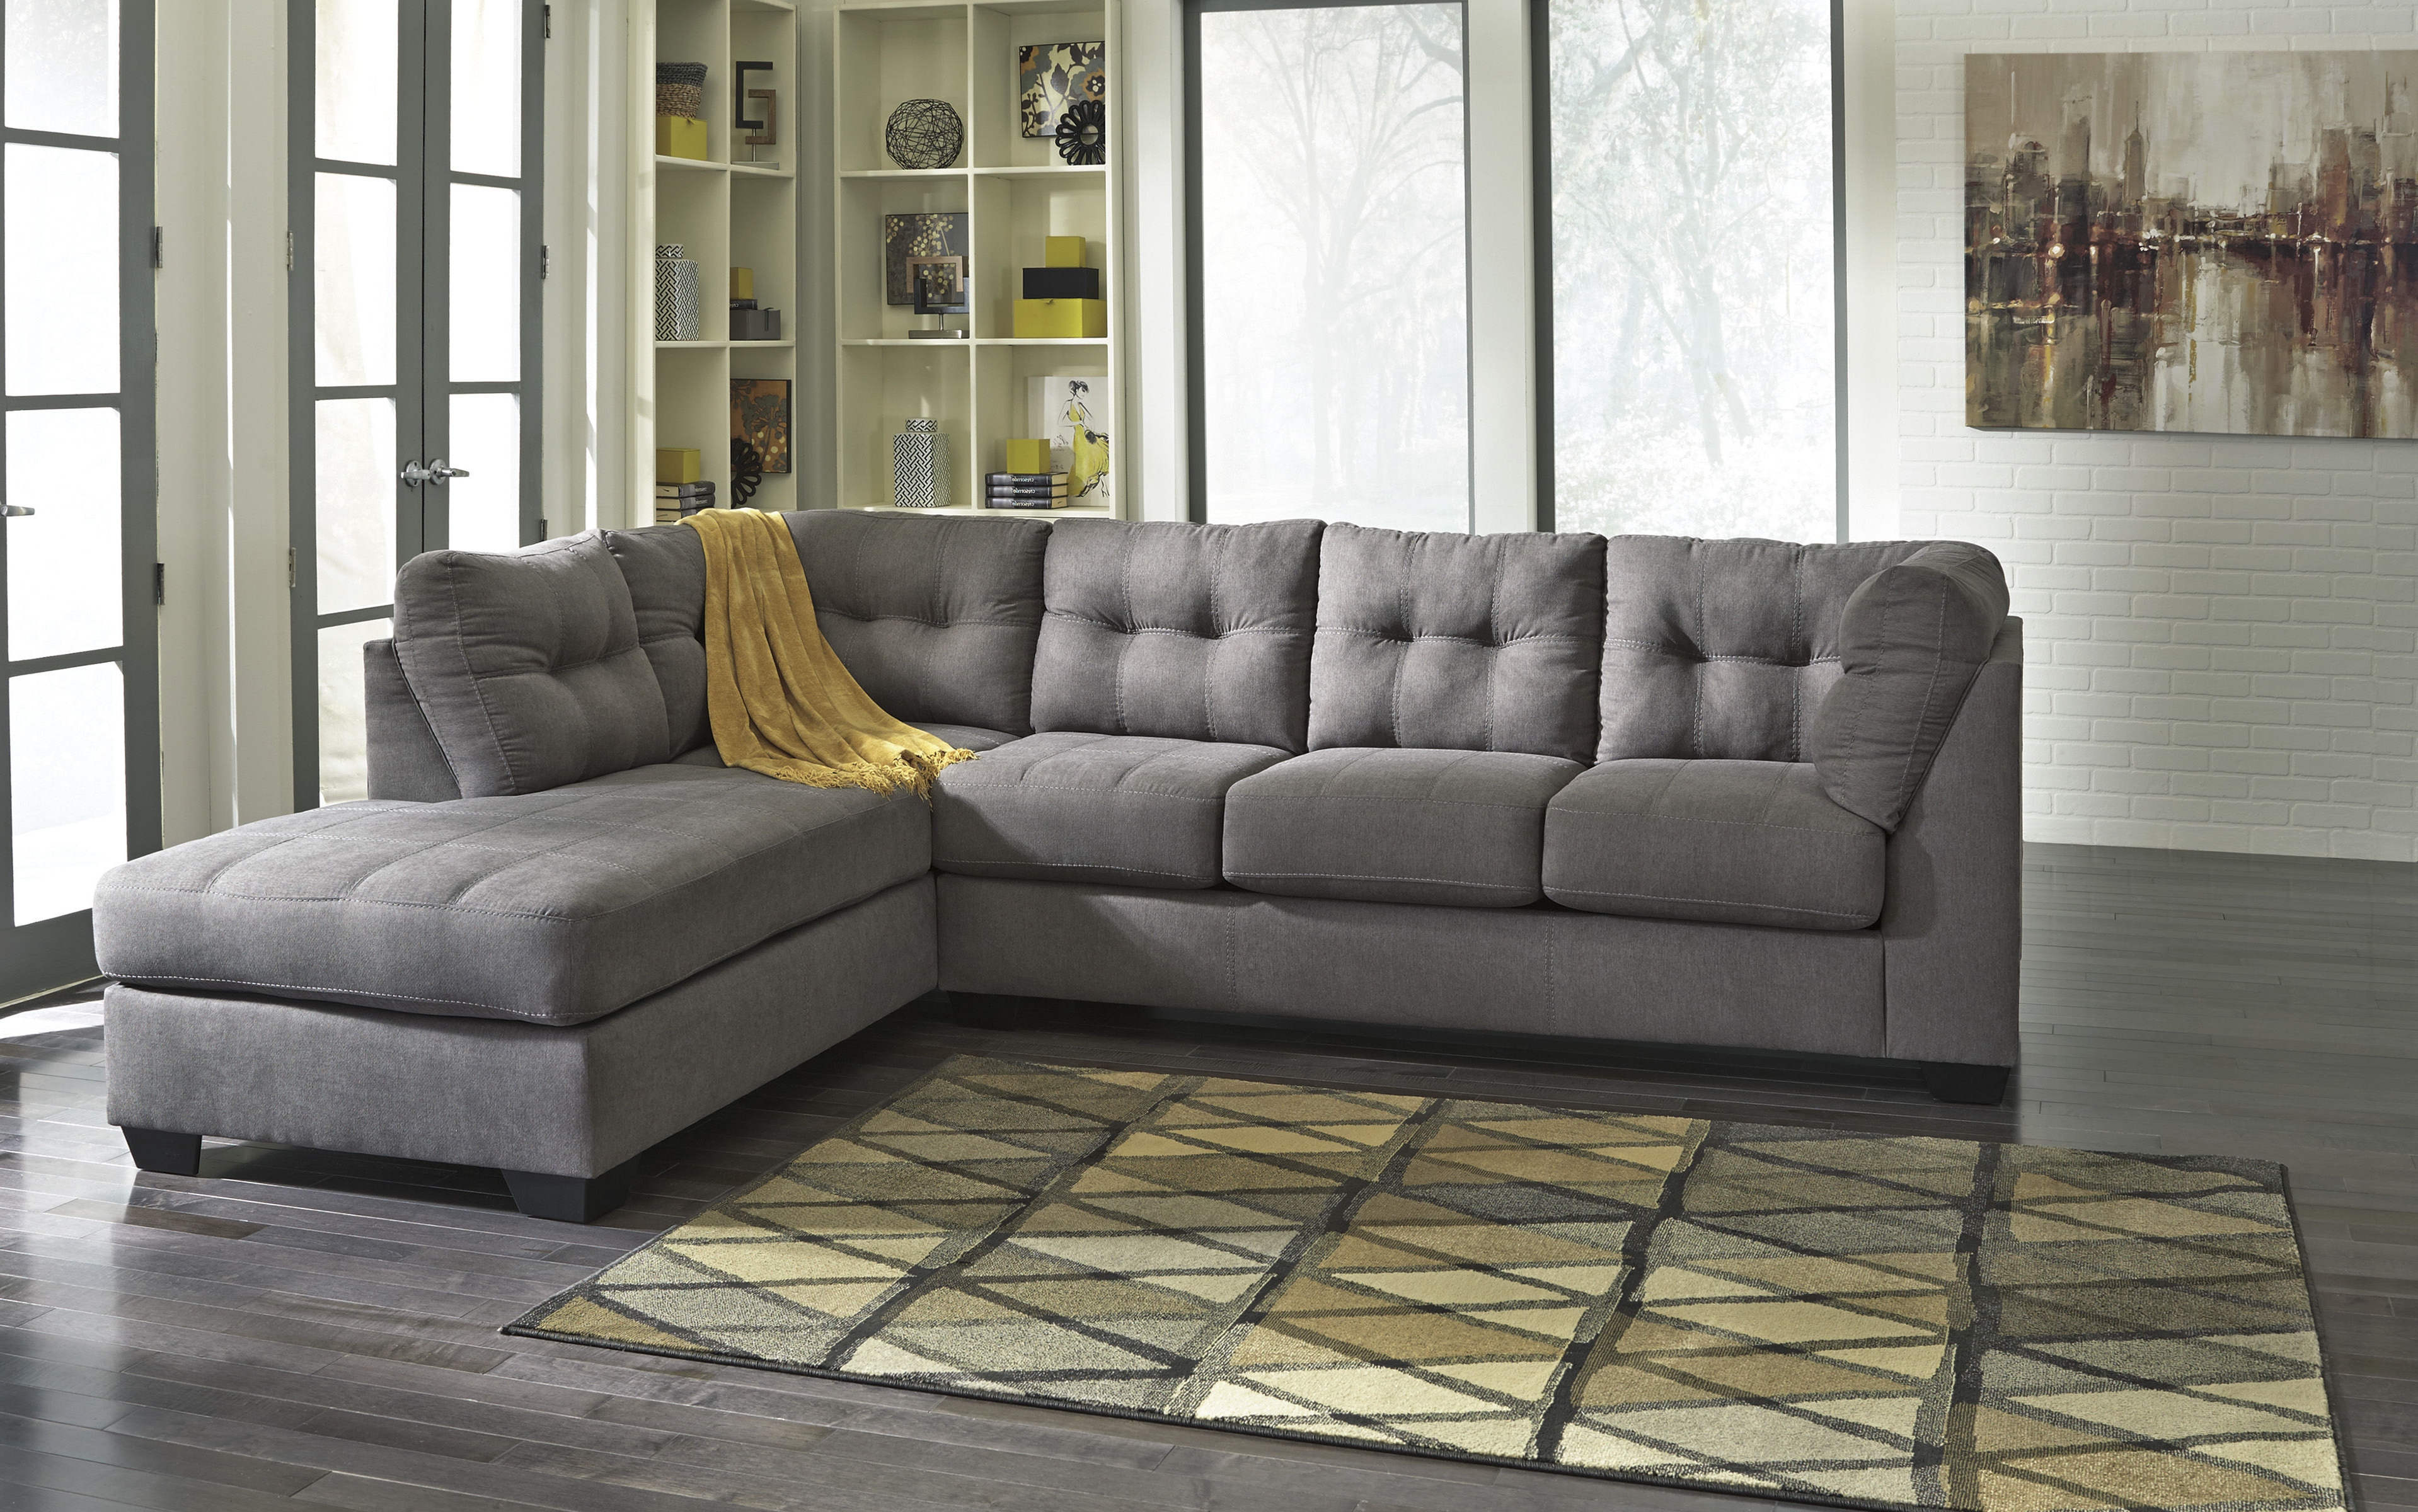 Lucy Dark Grey 2 Piece Sleeper Sectionals With Raf Chaise Throughout Best And Newest Ashley Furniture Maier Charcoal Raf Chaise Sectional (View 13 of 20)